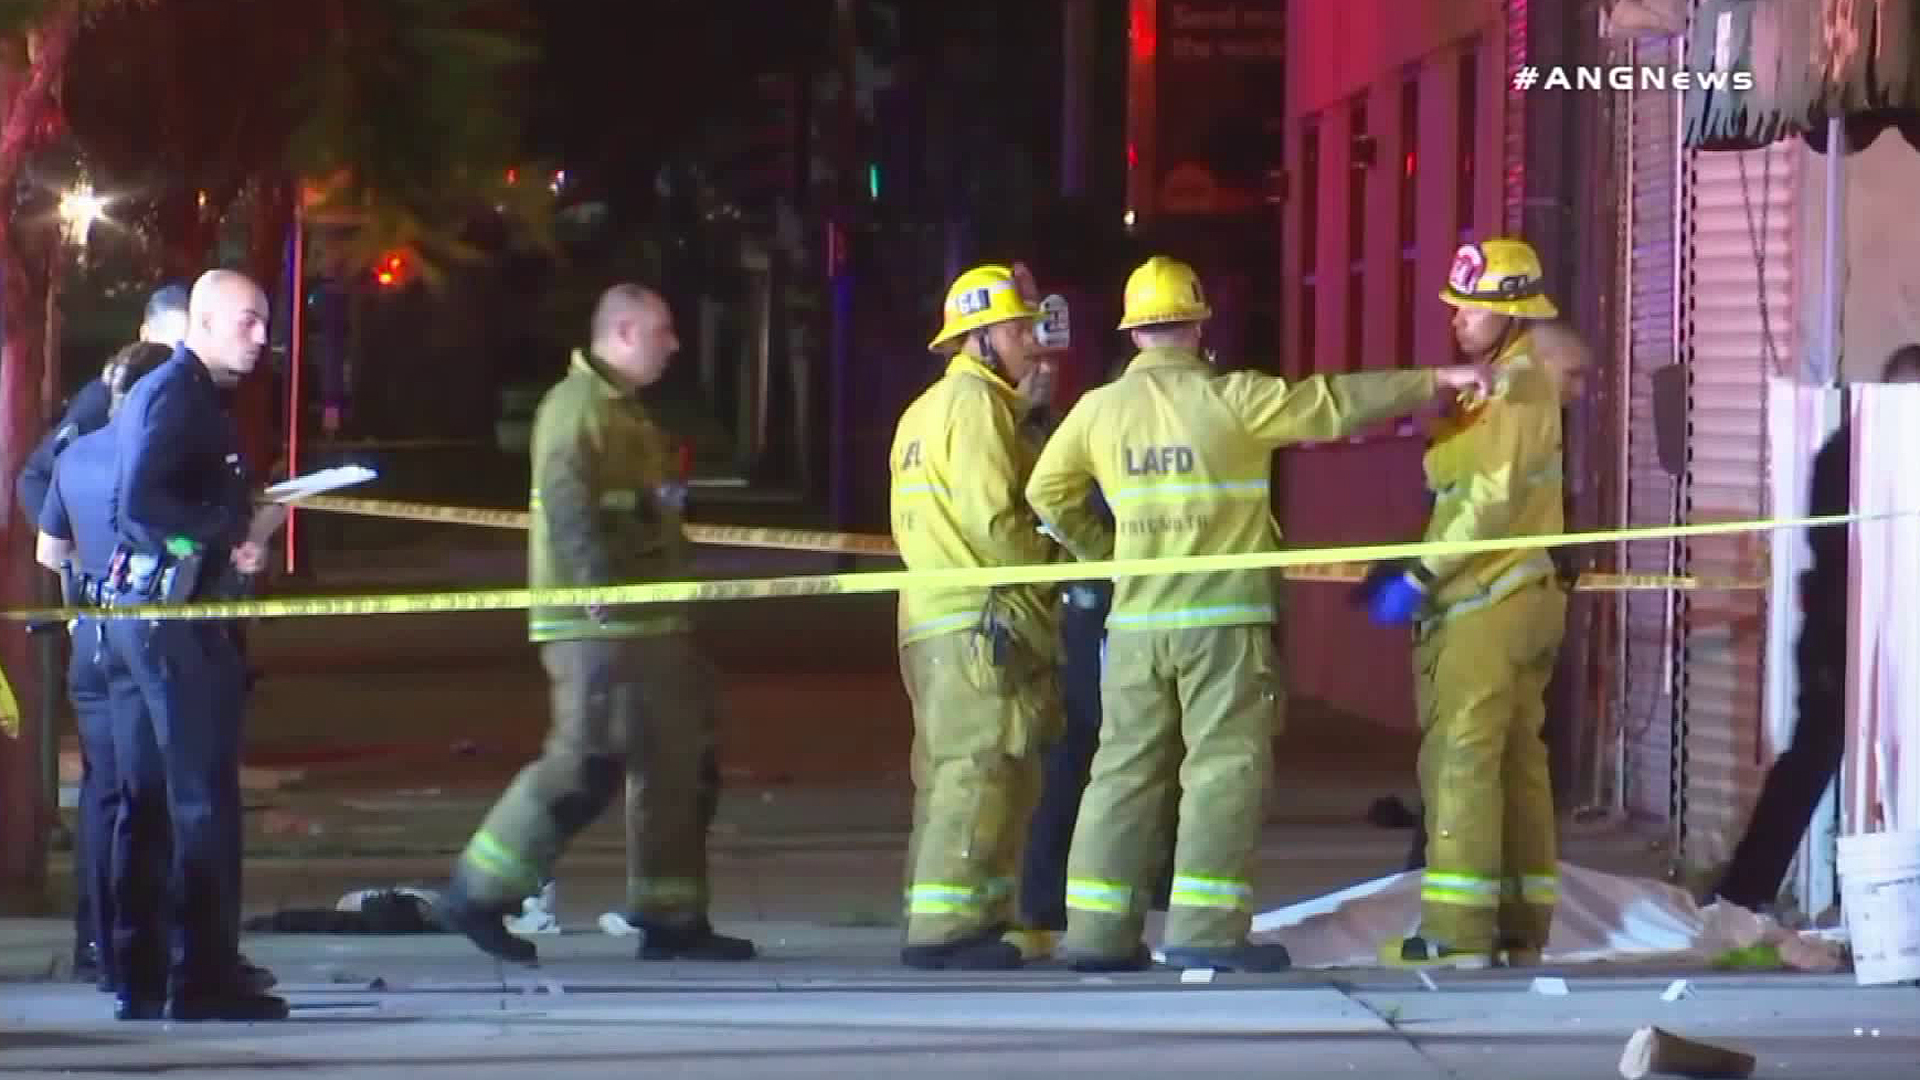 Crews respond to a fatal shooting in South Los Angeles on July 4, 2018. (Credit: ANG News)